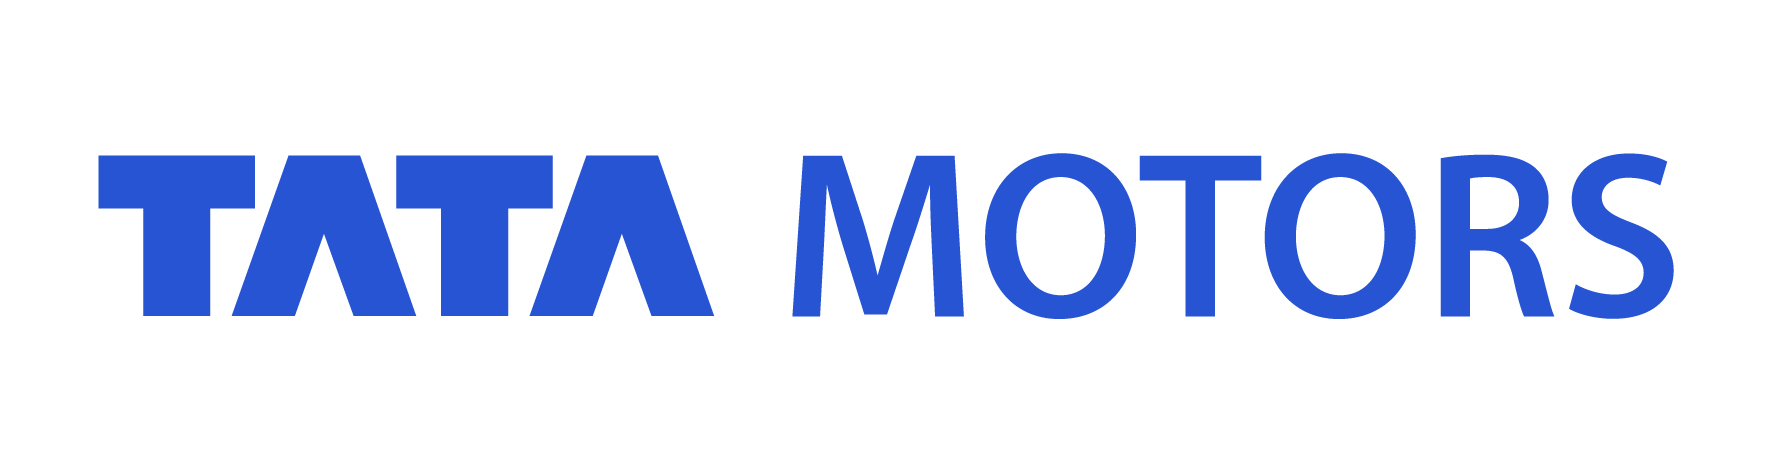 Tata Motors Logo.jpeg